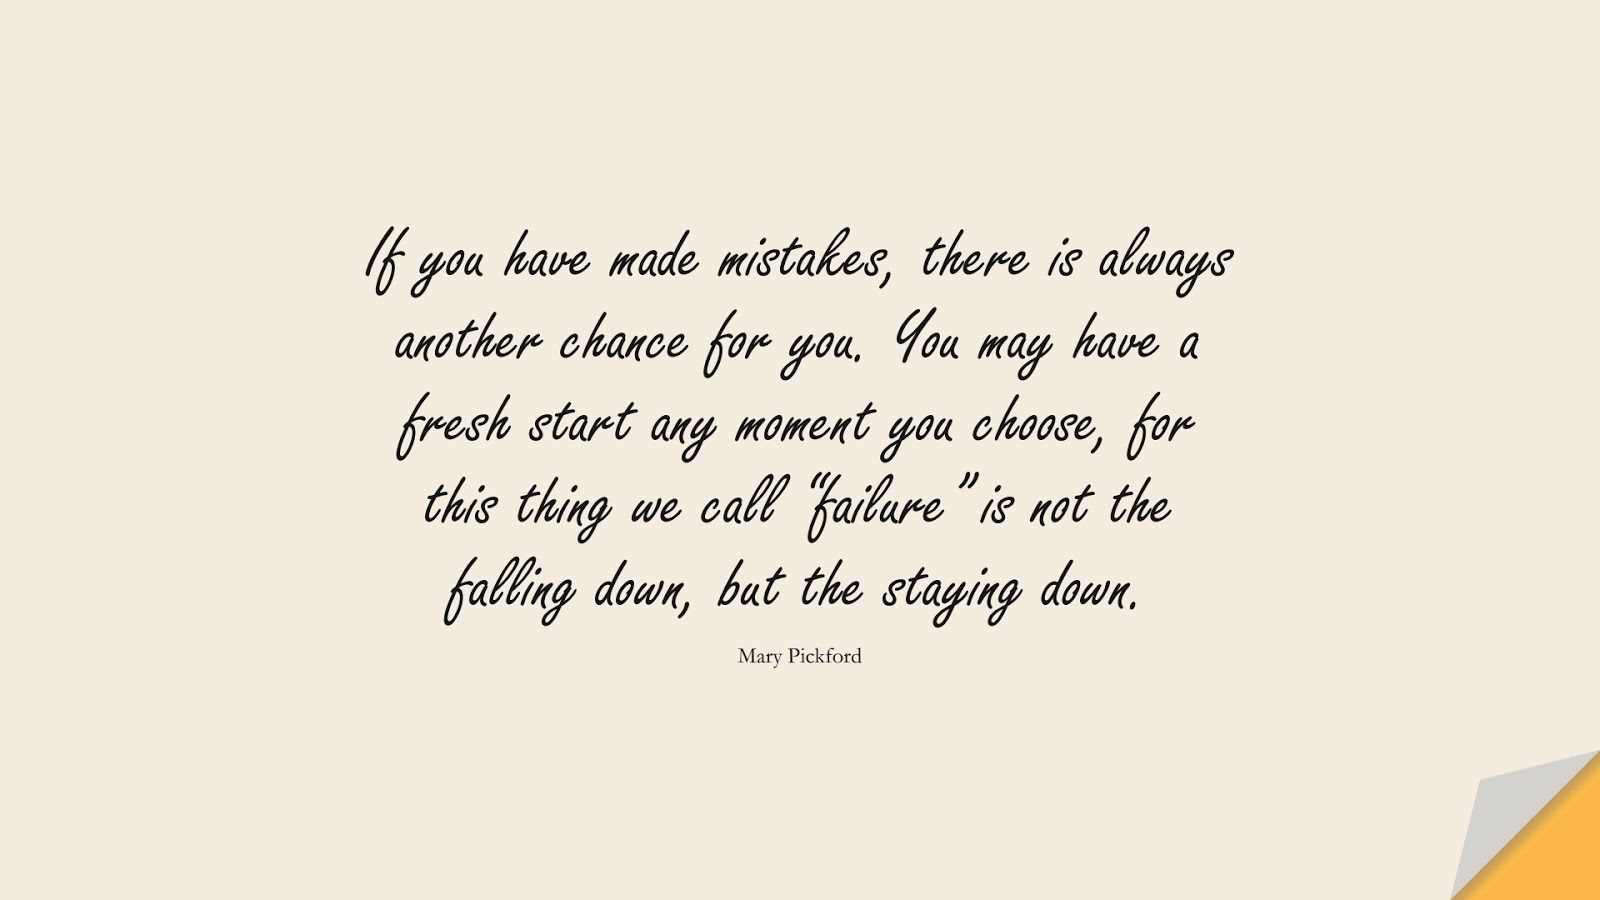 """If you have made mistakes, there is always another chance for you. You may have a fresh start any moment you choose, for this thing we call """"failure"""" is not the falling down, but the staying down. (Mary Pickford);  #HopeQuotes"""